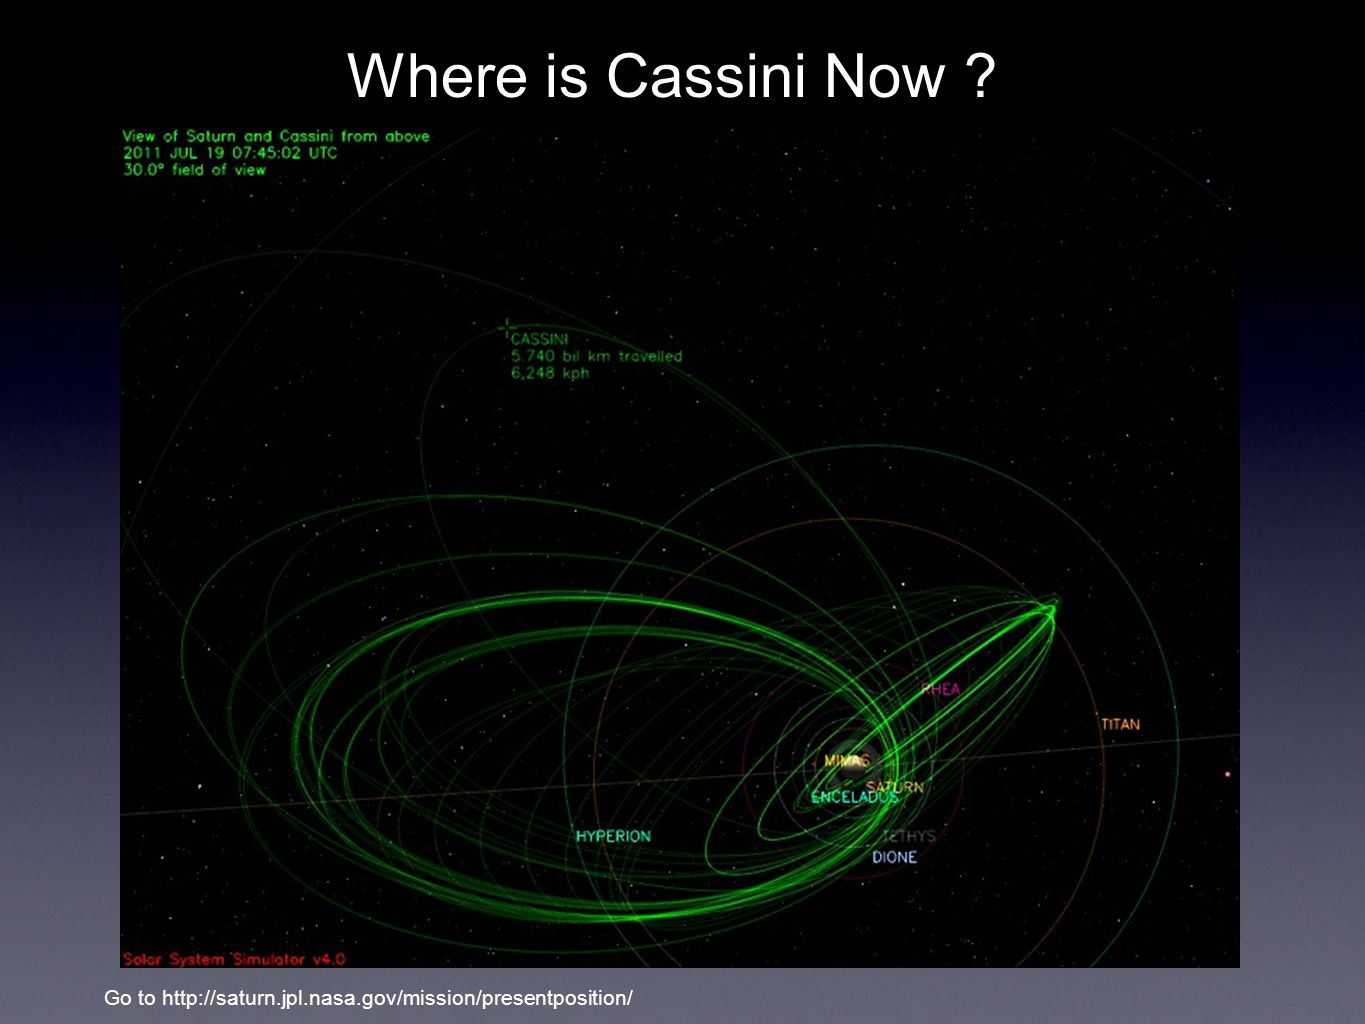 Where is Cassini Now Go to